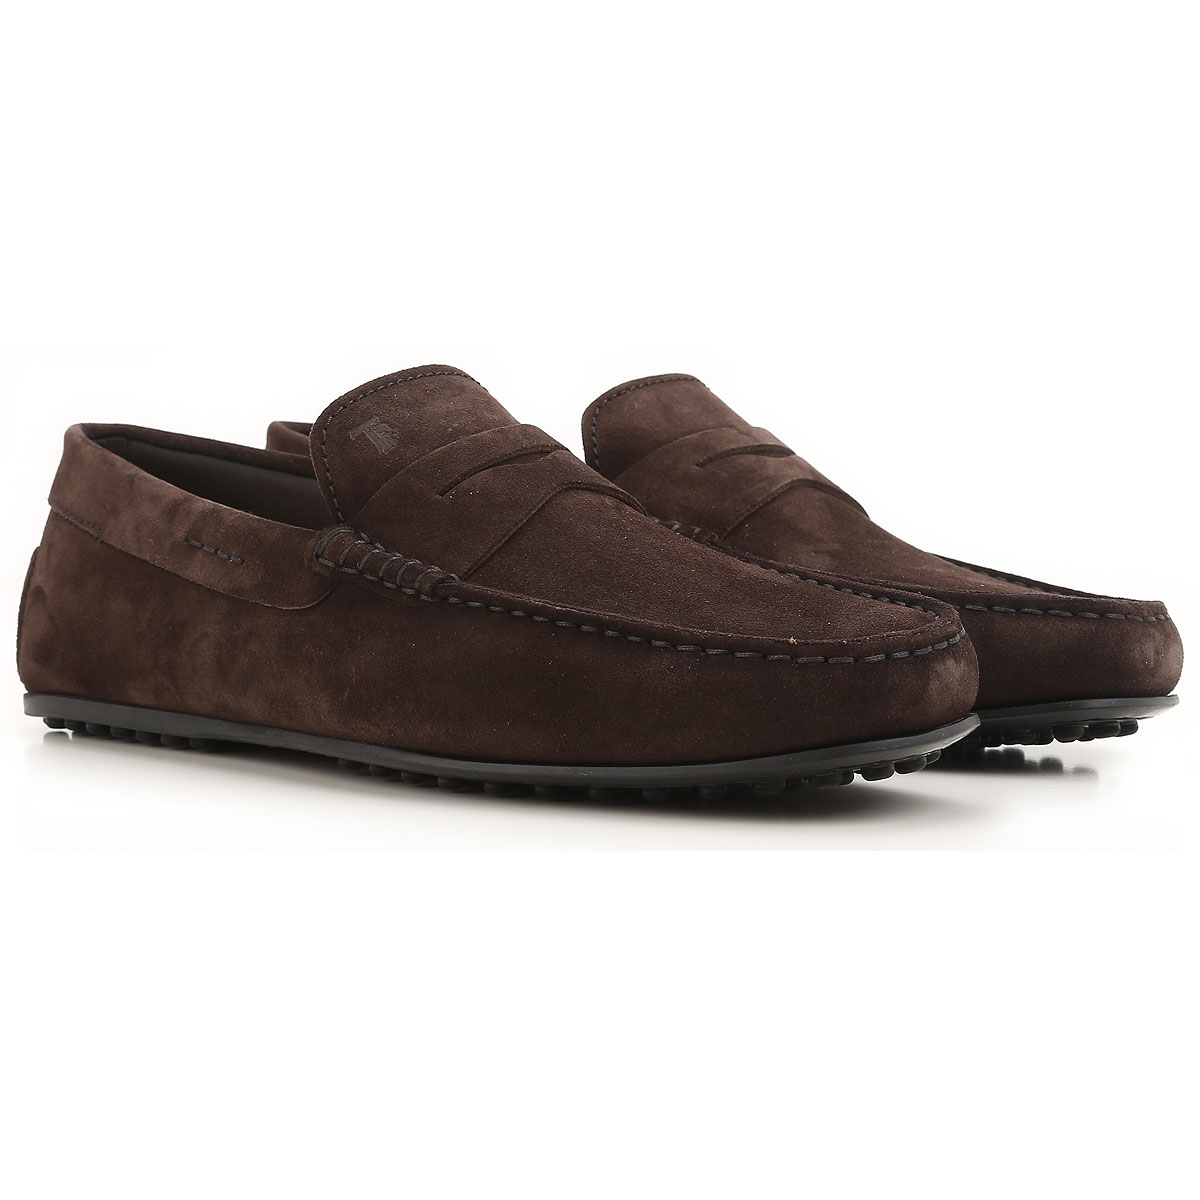 Image of Tods Driver Loafer Shoes for Men, Dark Brown, suede, 2017, 10 10.5 11 11.5 12 6 7 7.5 8 8.5 9 9.5